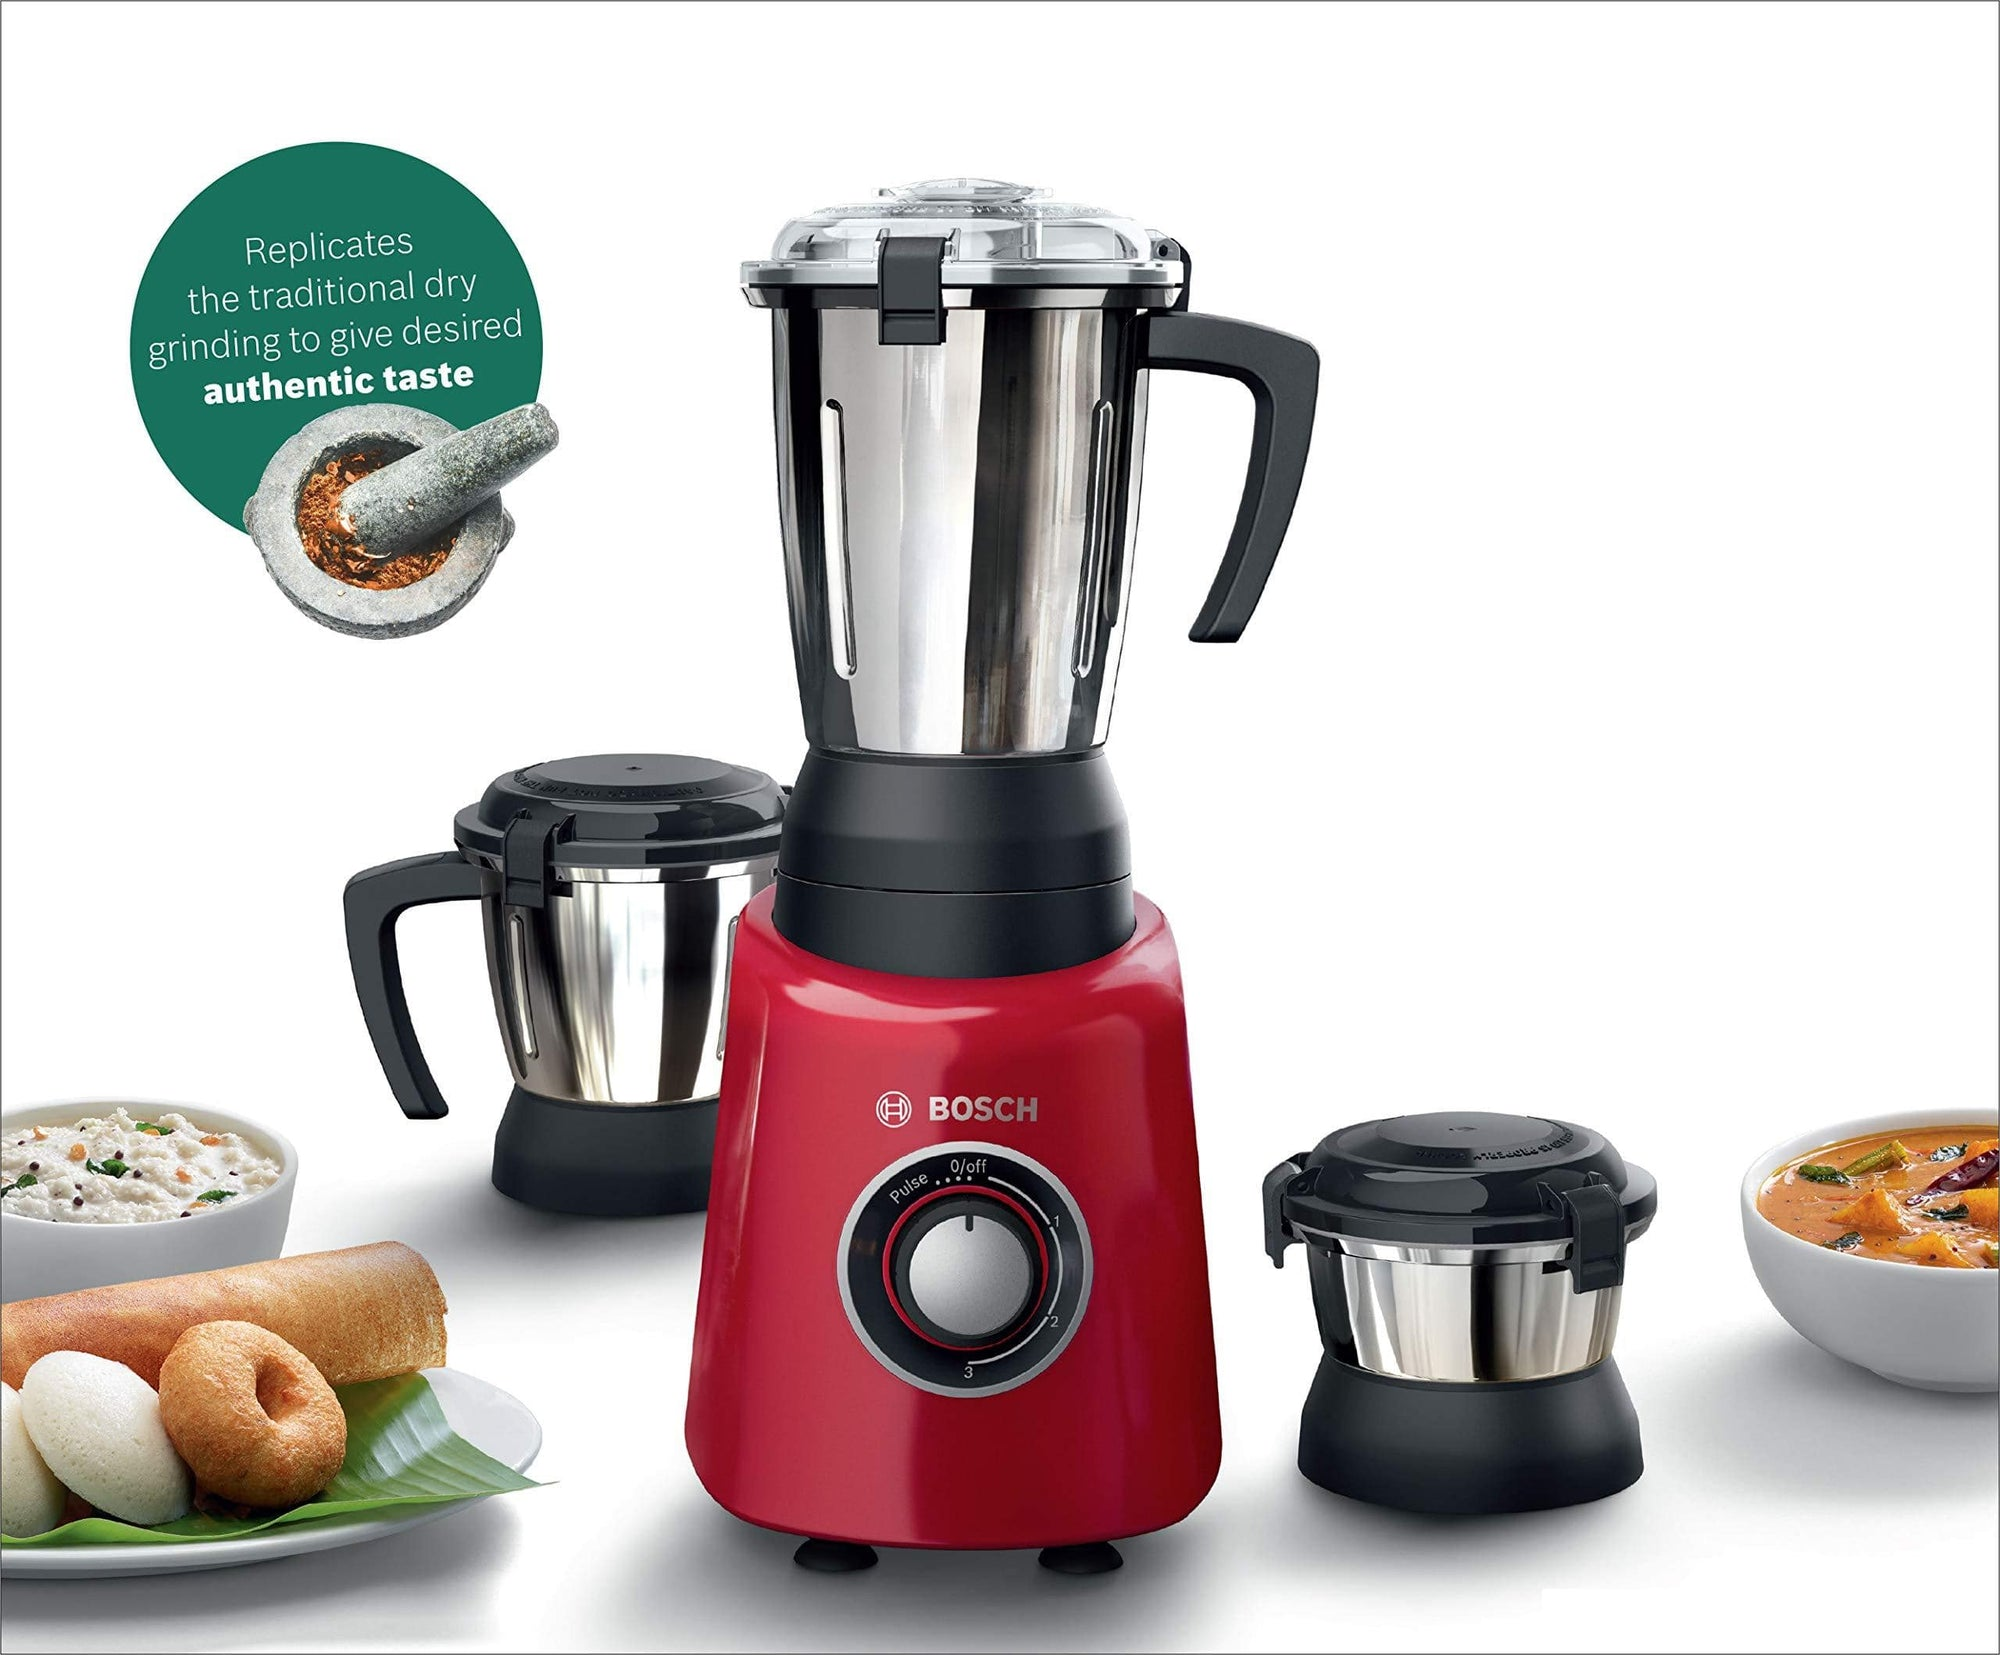 Bosch TrueMixx Radiance 600-Watt Mixer Grinder (Red) - KITCHEN MART